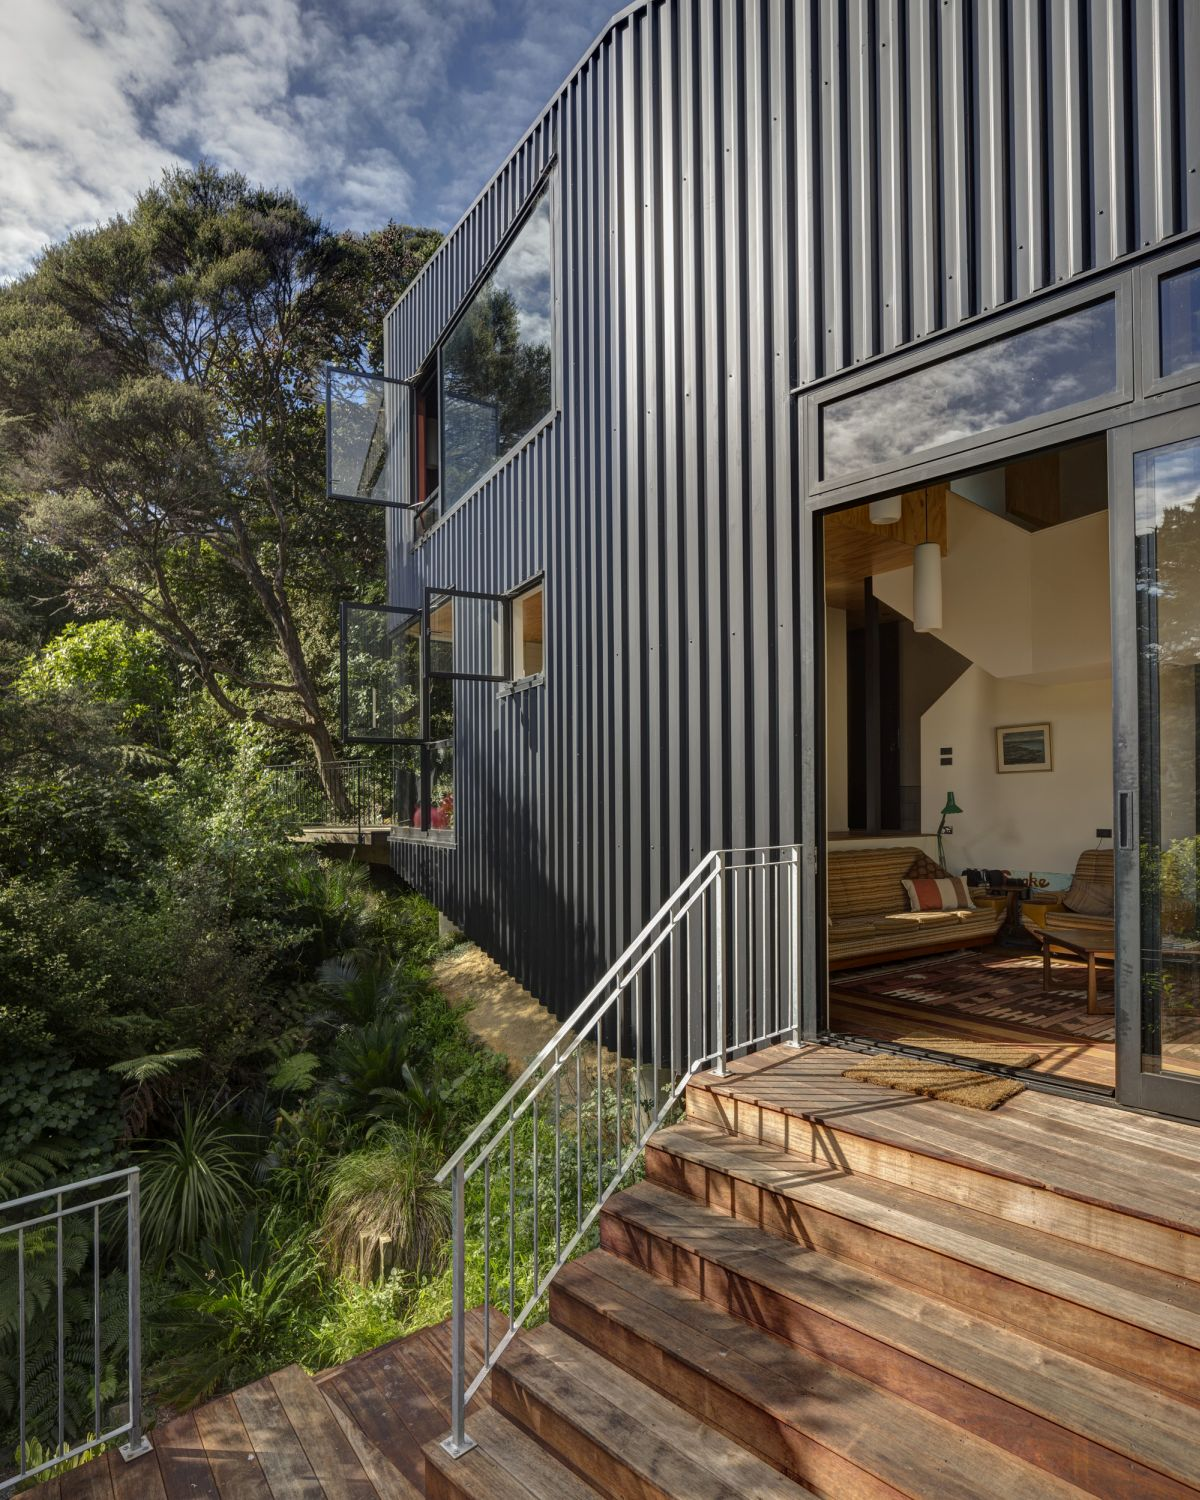 The black cladding on the exterior allows the house to more easily blend in with its surroundings